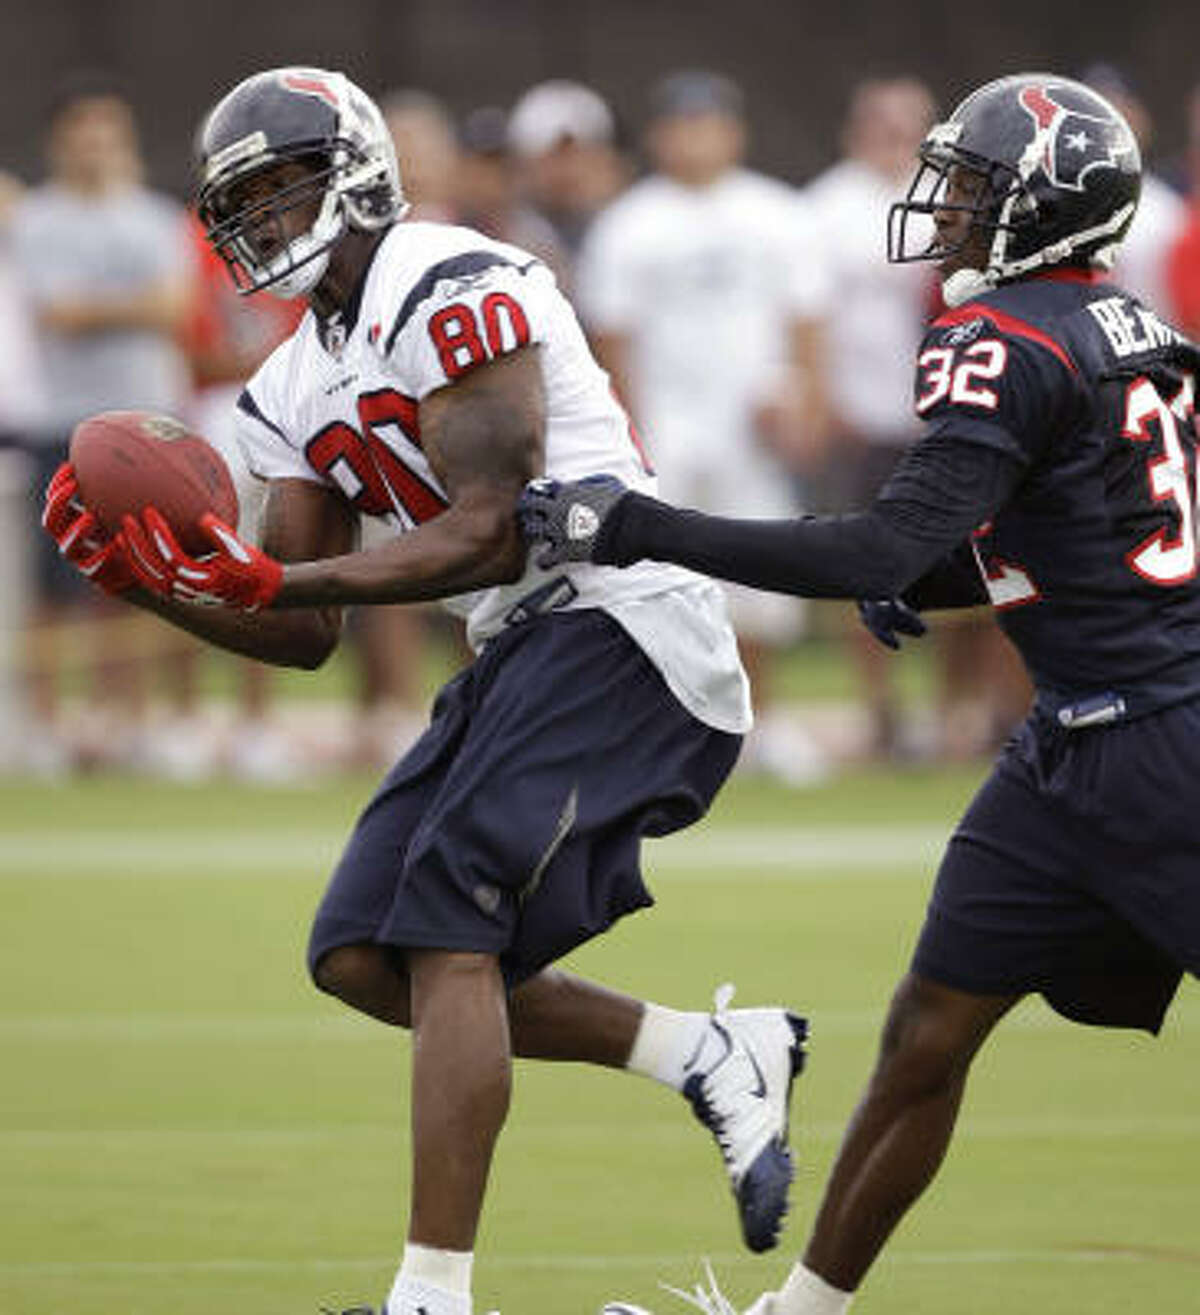 Wide receiver Andre Johnson, left, reaches out to make a reception past cornerback Fred Bennett.